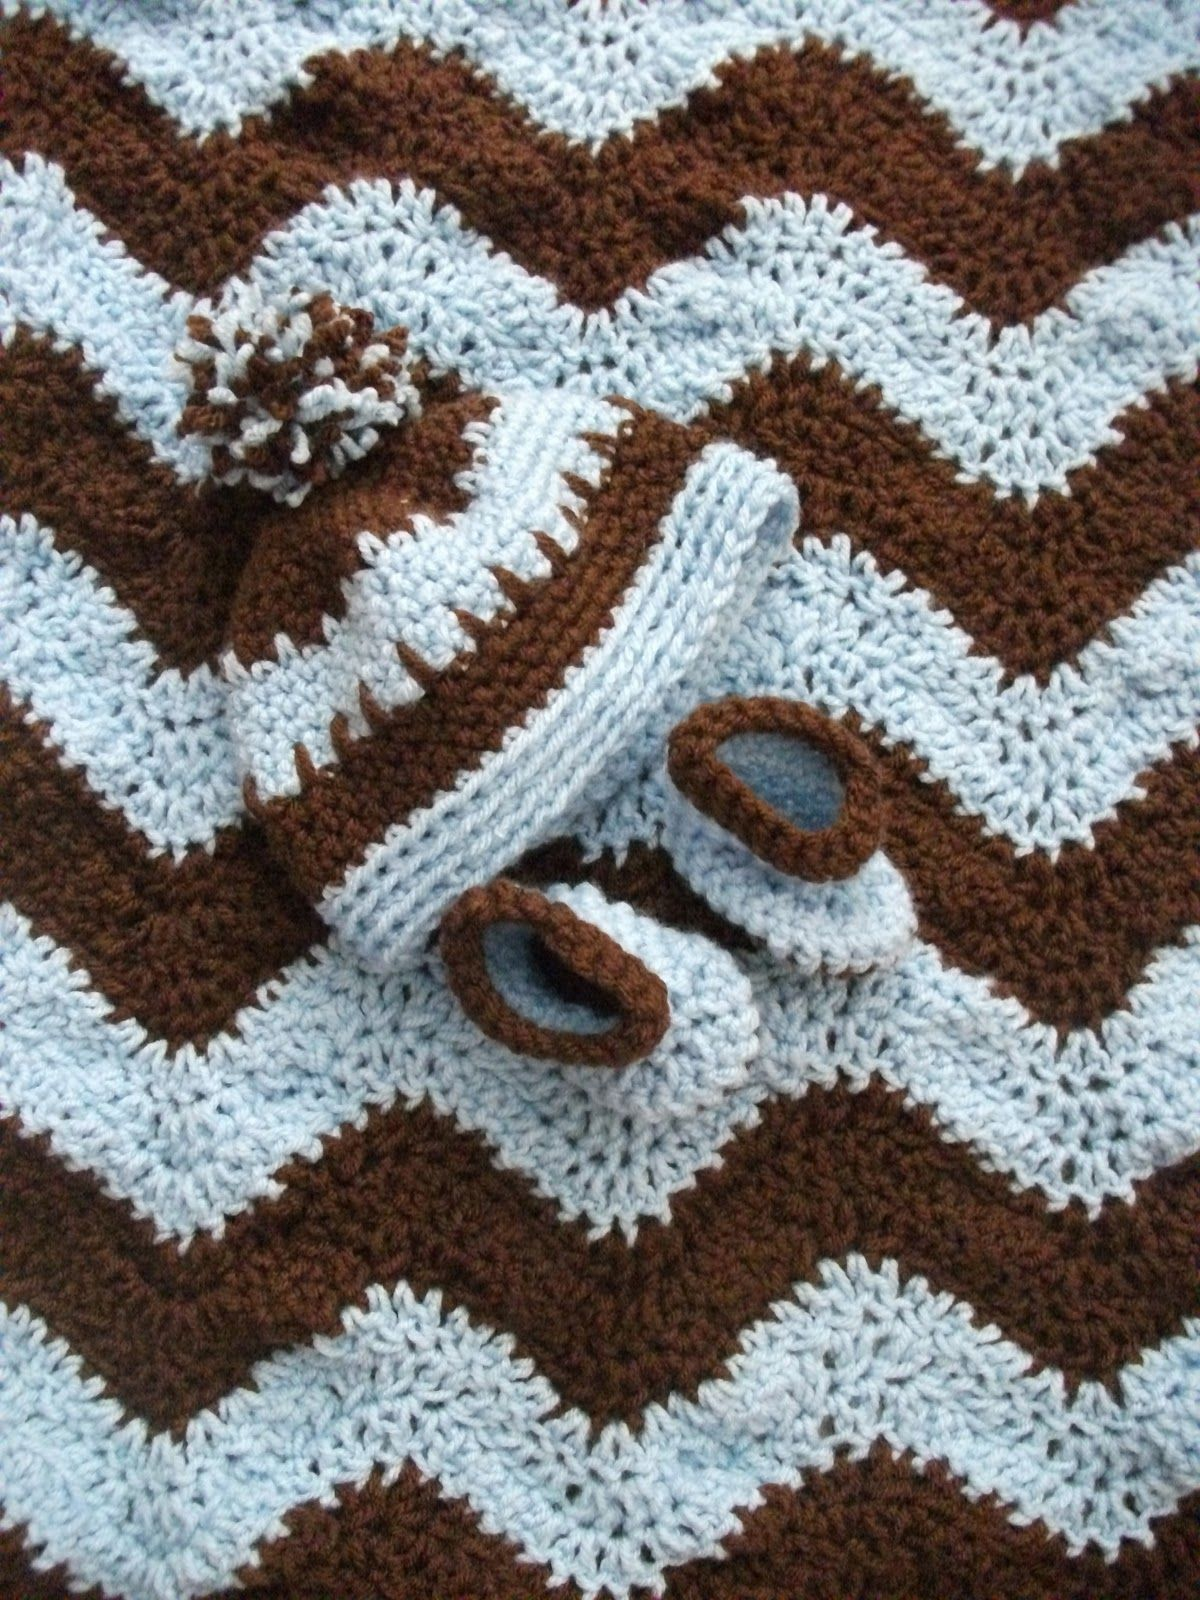 40 FREE CROCHET RIPPLE AFGHAN PATTERNS, LAPGHANS, BABY BLANKETS ...